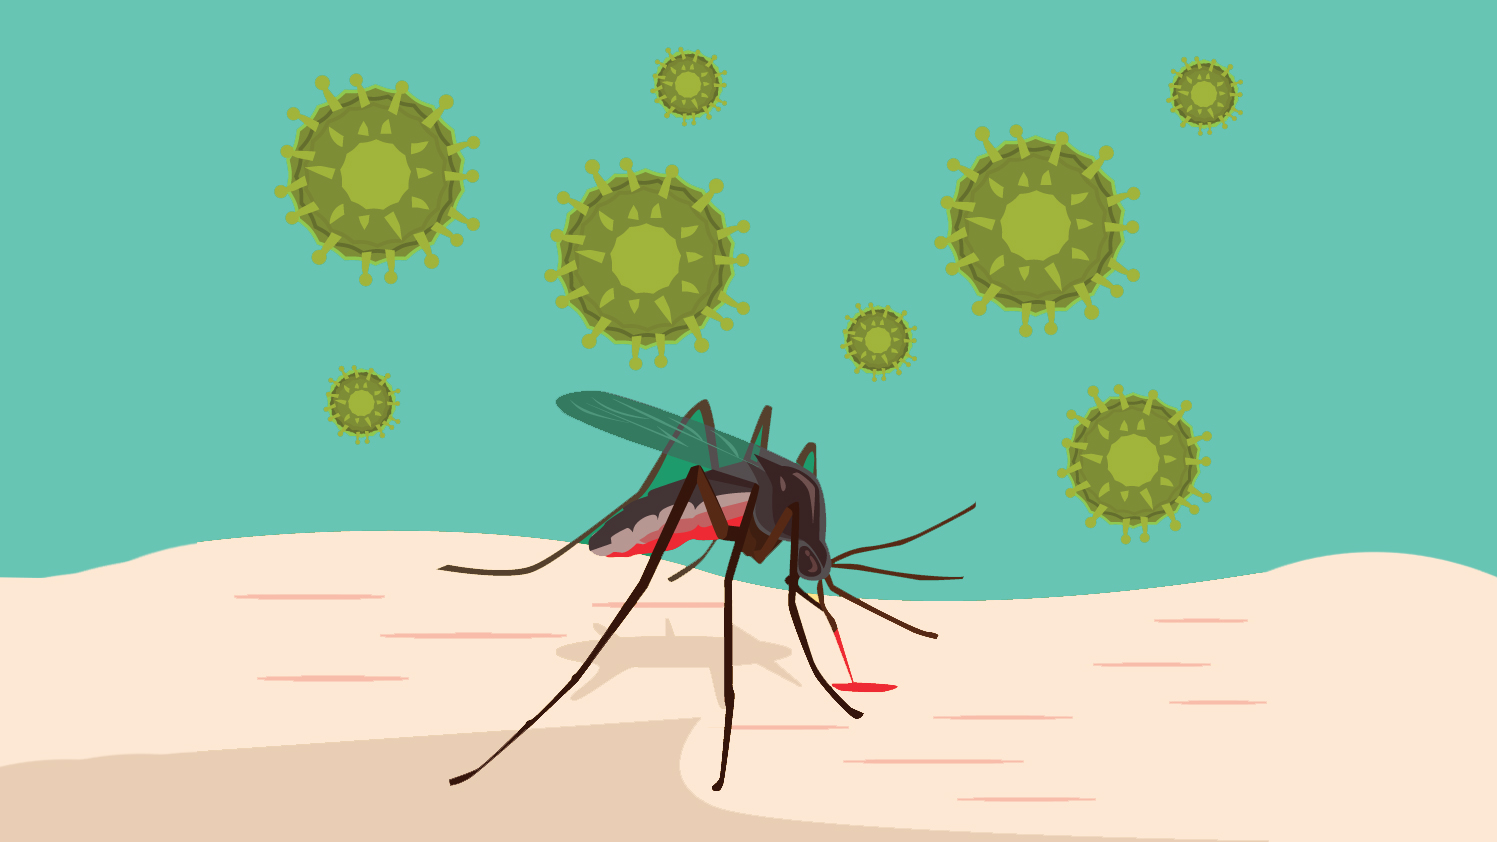 malaria-mosquito-virus malaria mosquito-virus mosquito virus bite itch symptoms death woman health contagious water summer skin exposed